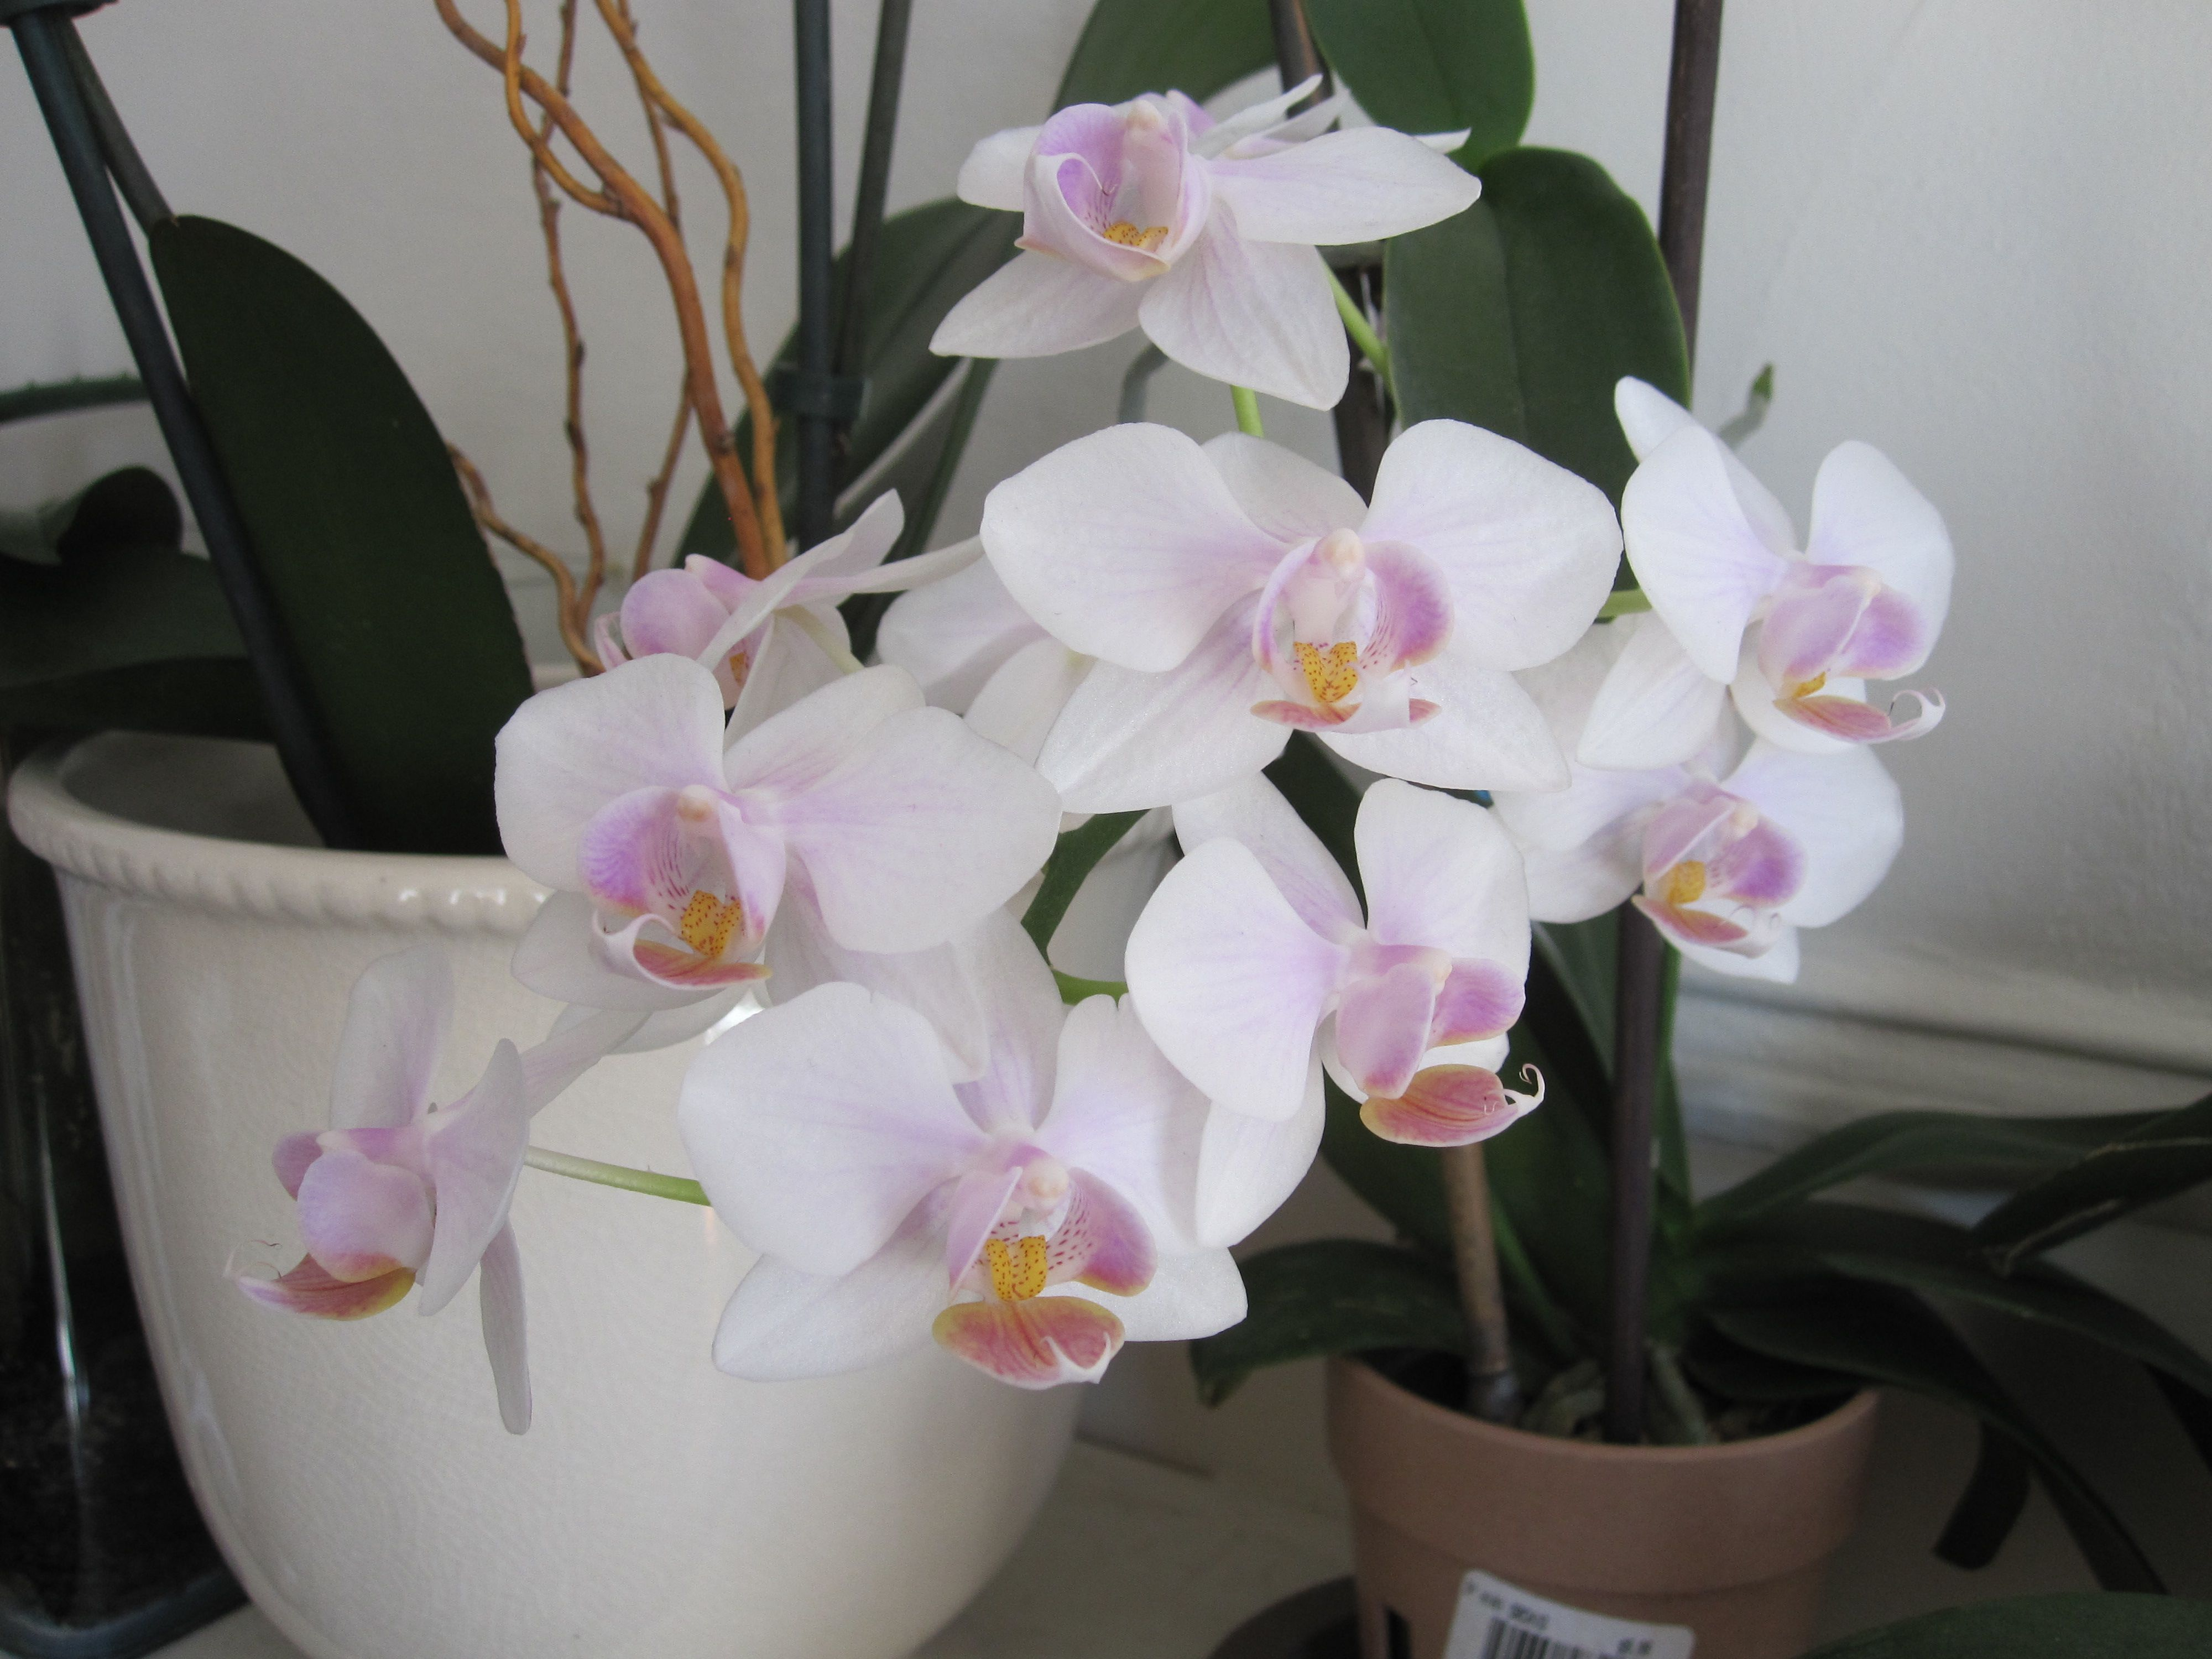 Phal from Trader Joe's...so many flowers on this one!